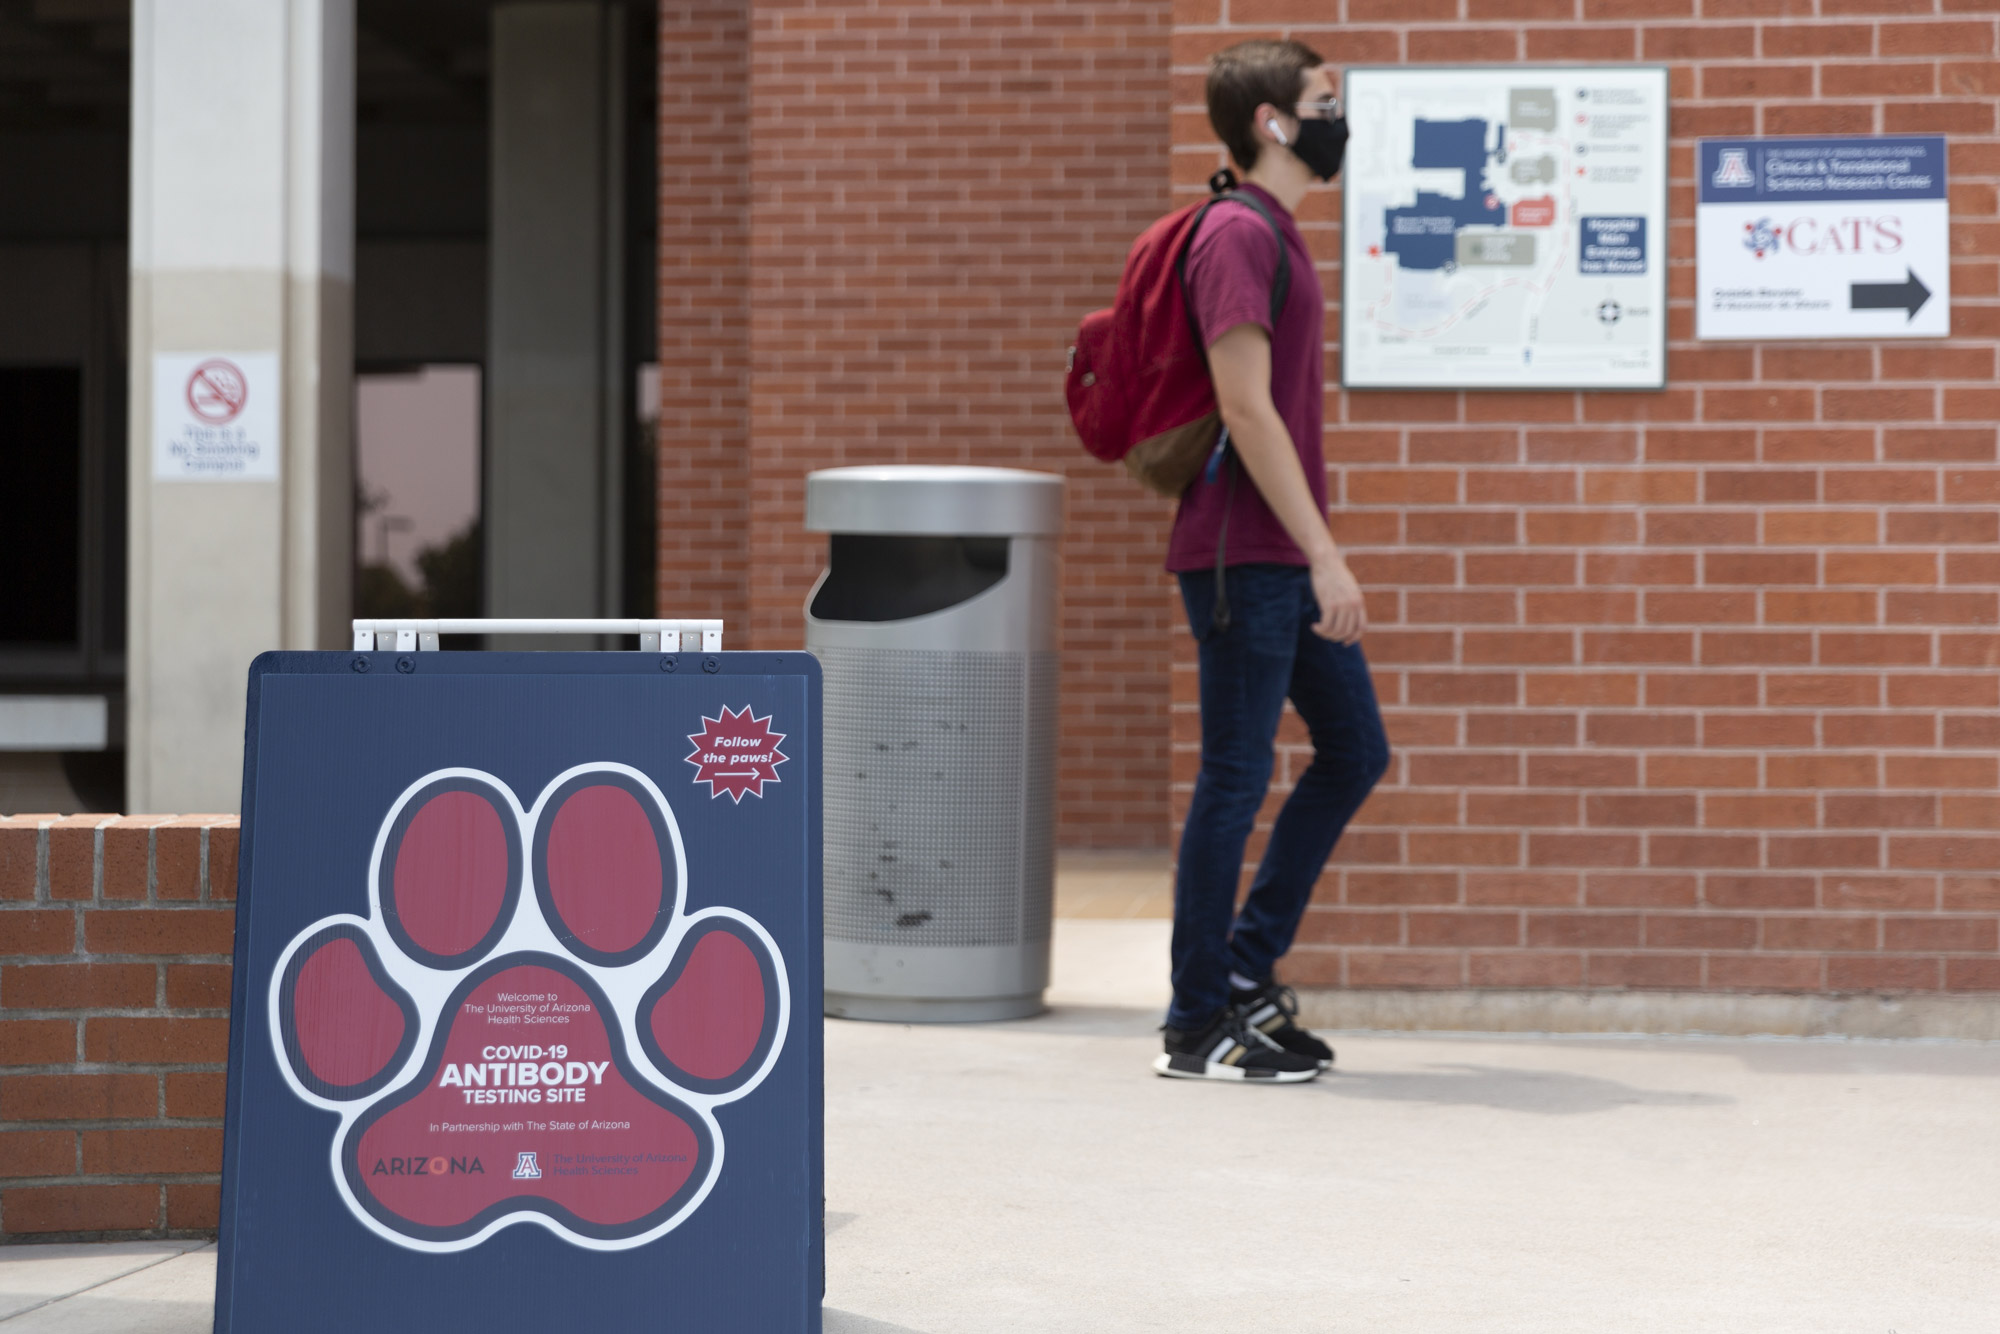 A person passes a Covid-19 antibody testing sign at the University of Arizona in Tucson, Arizona, on August 24.